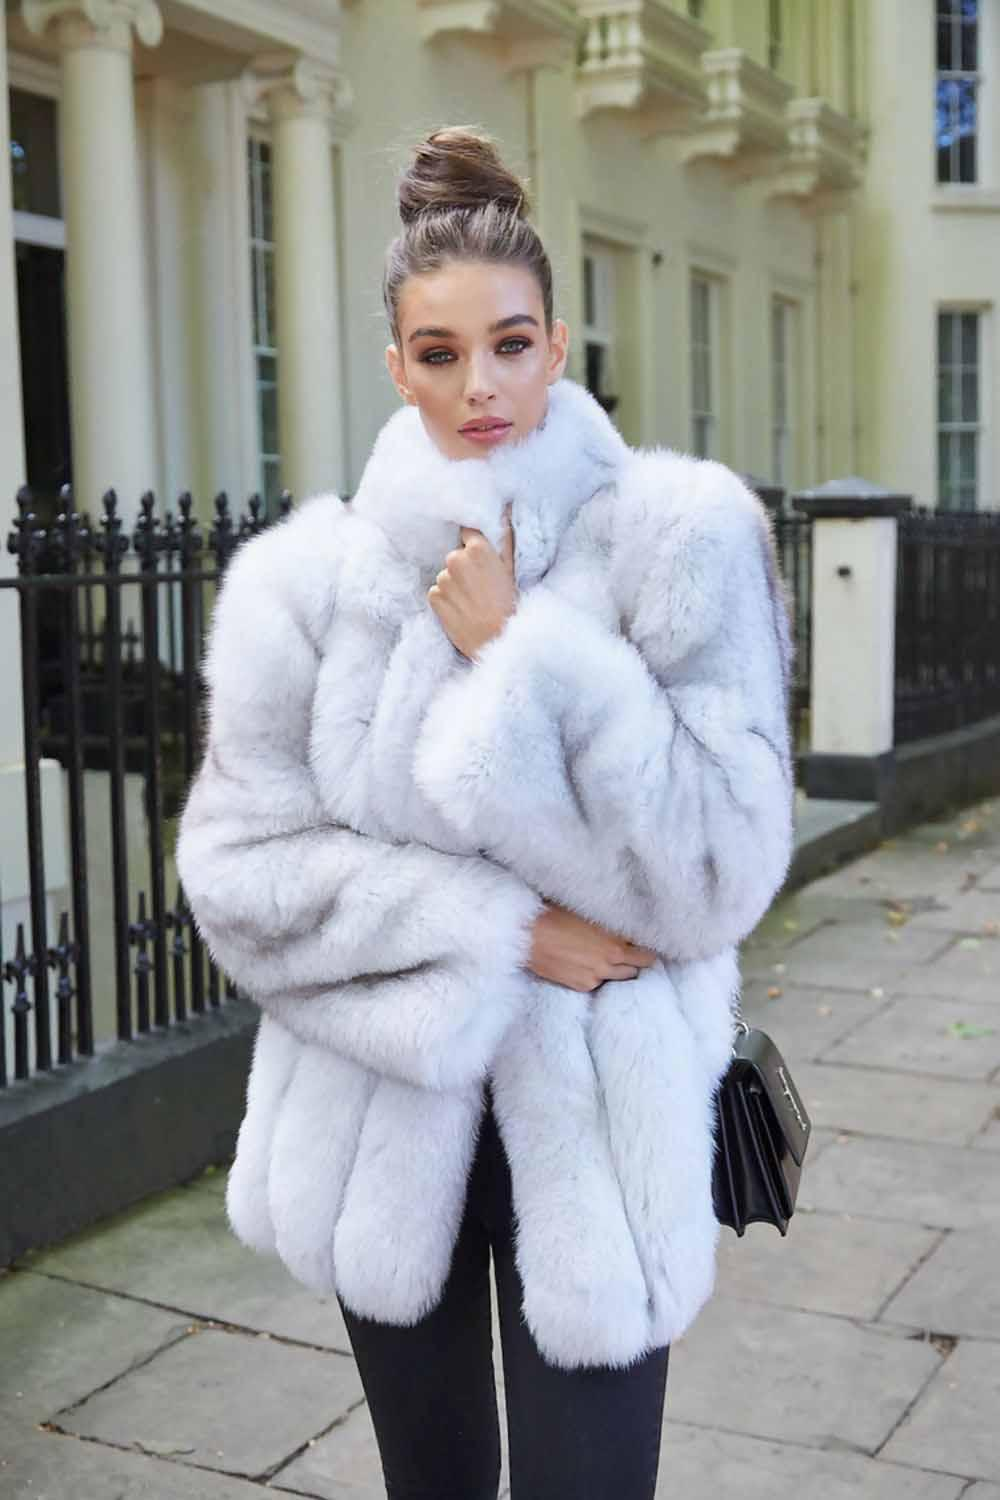 There is nothing better than wrapping up in a fluffy white fur coat